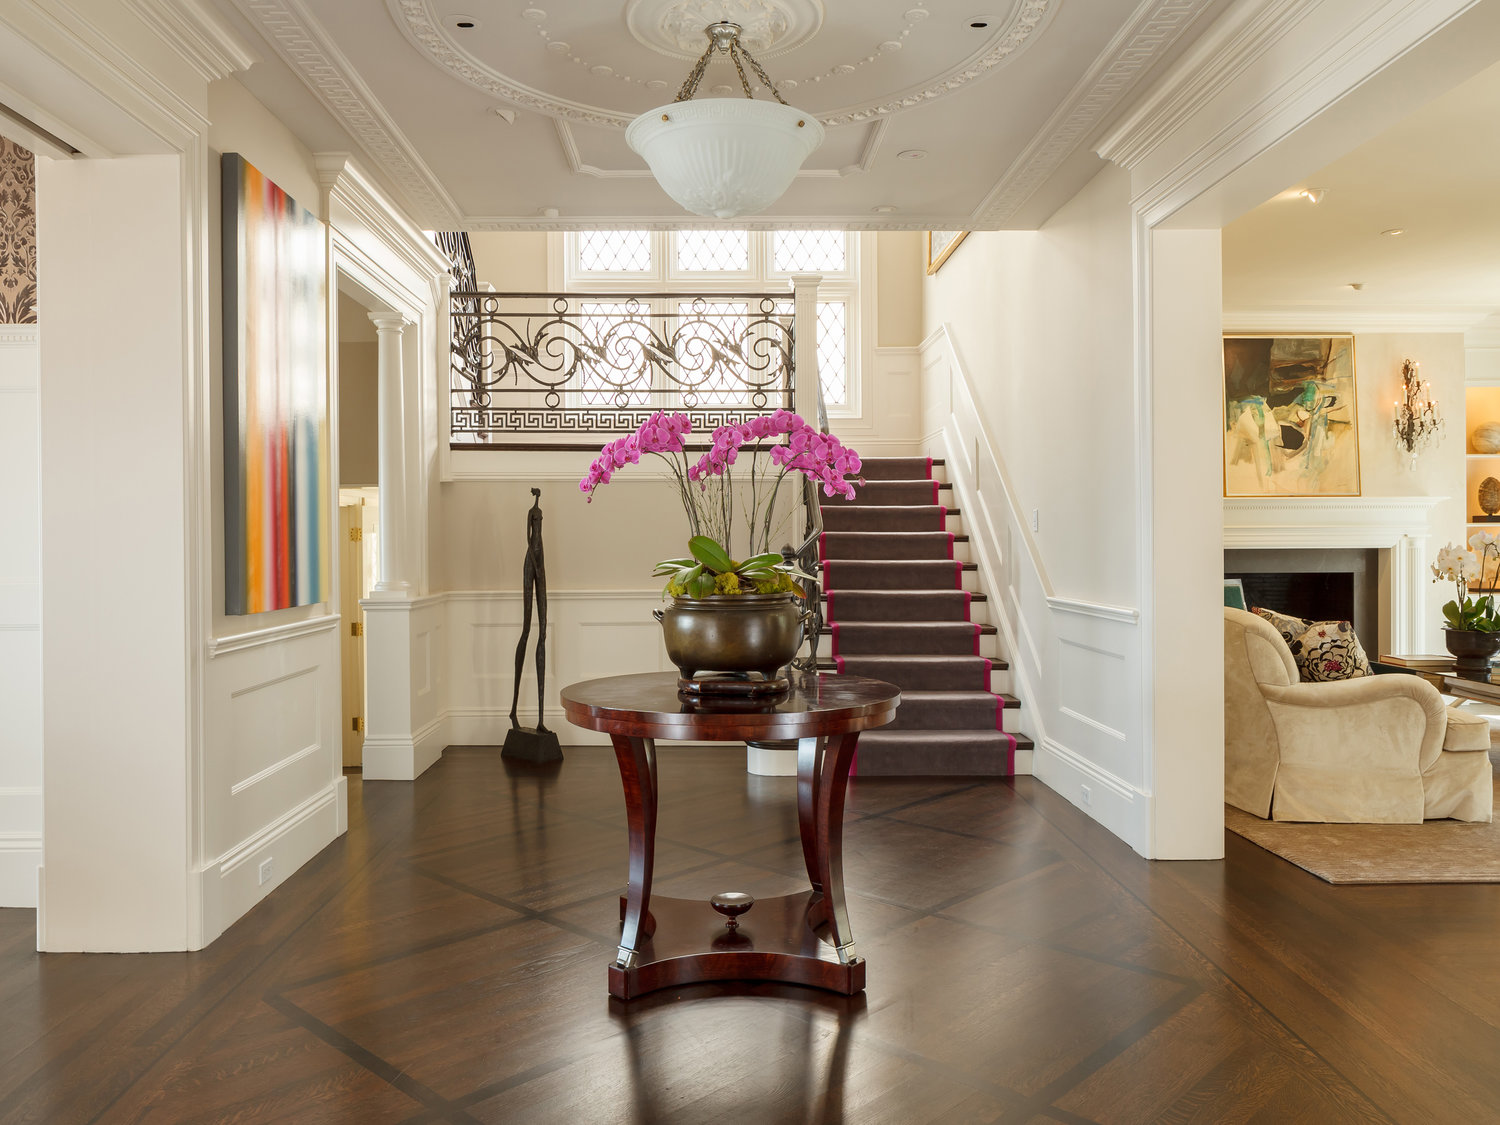 PACIFIC HEIGHTS - PRIVATE SALE - $13,500,000